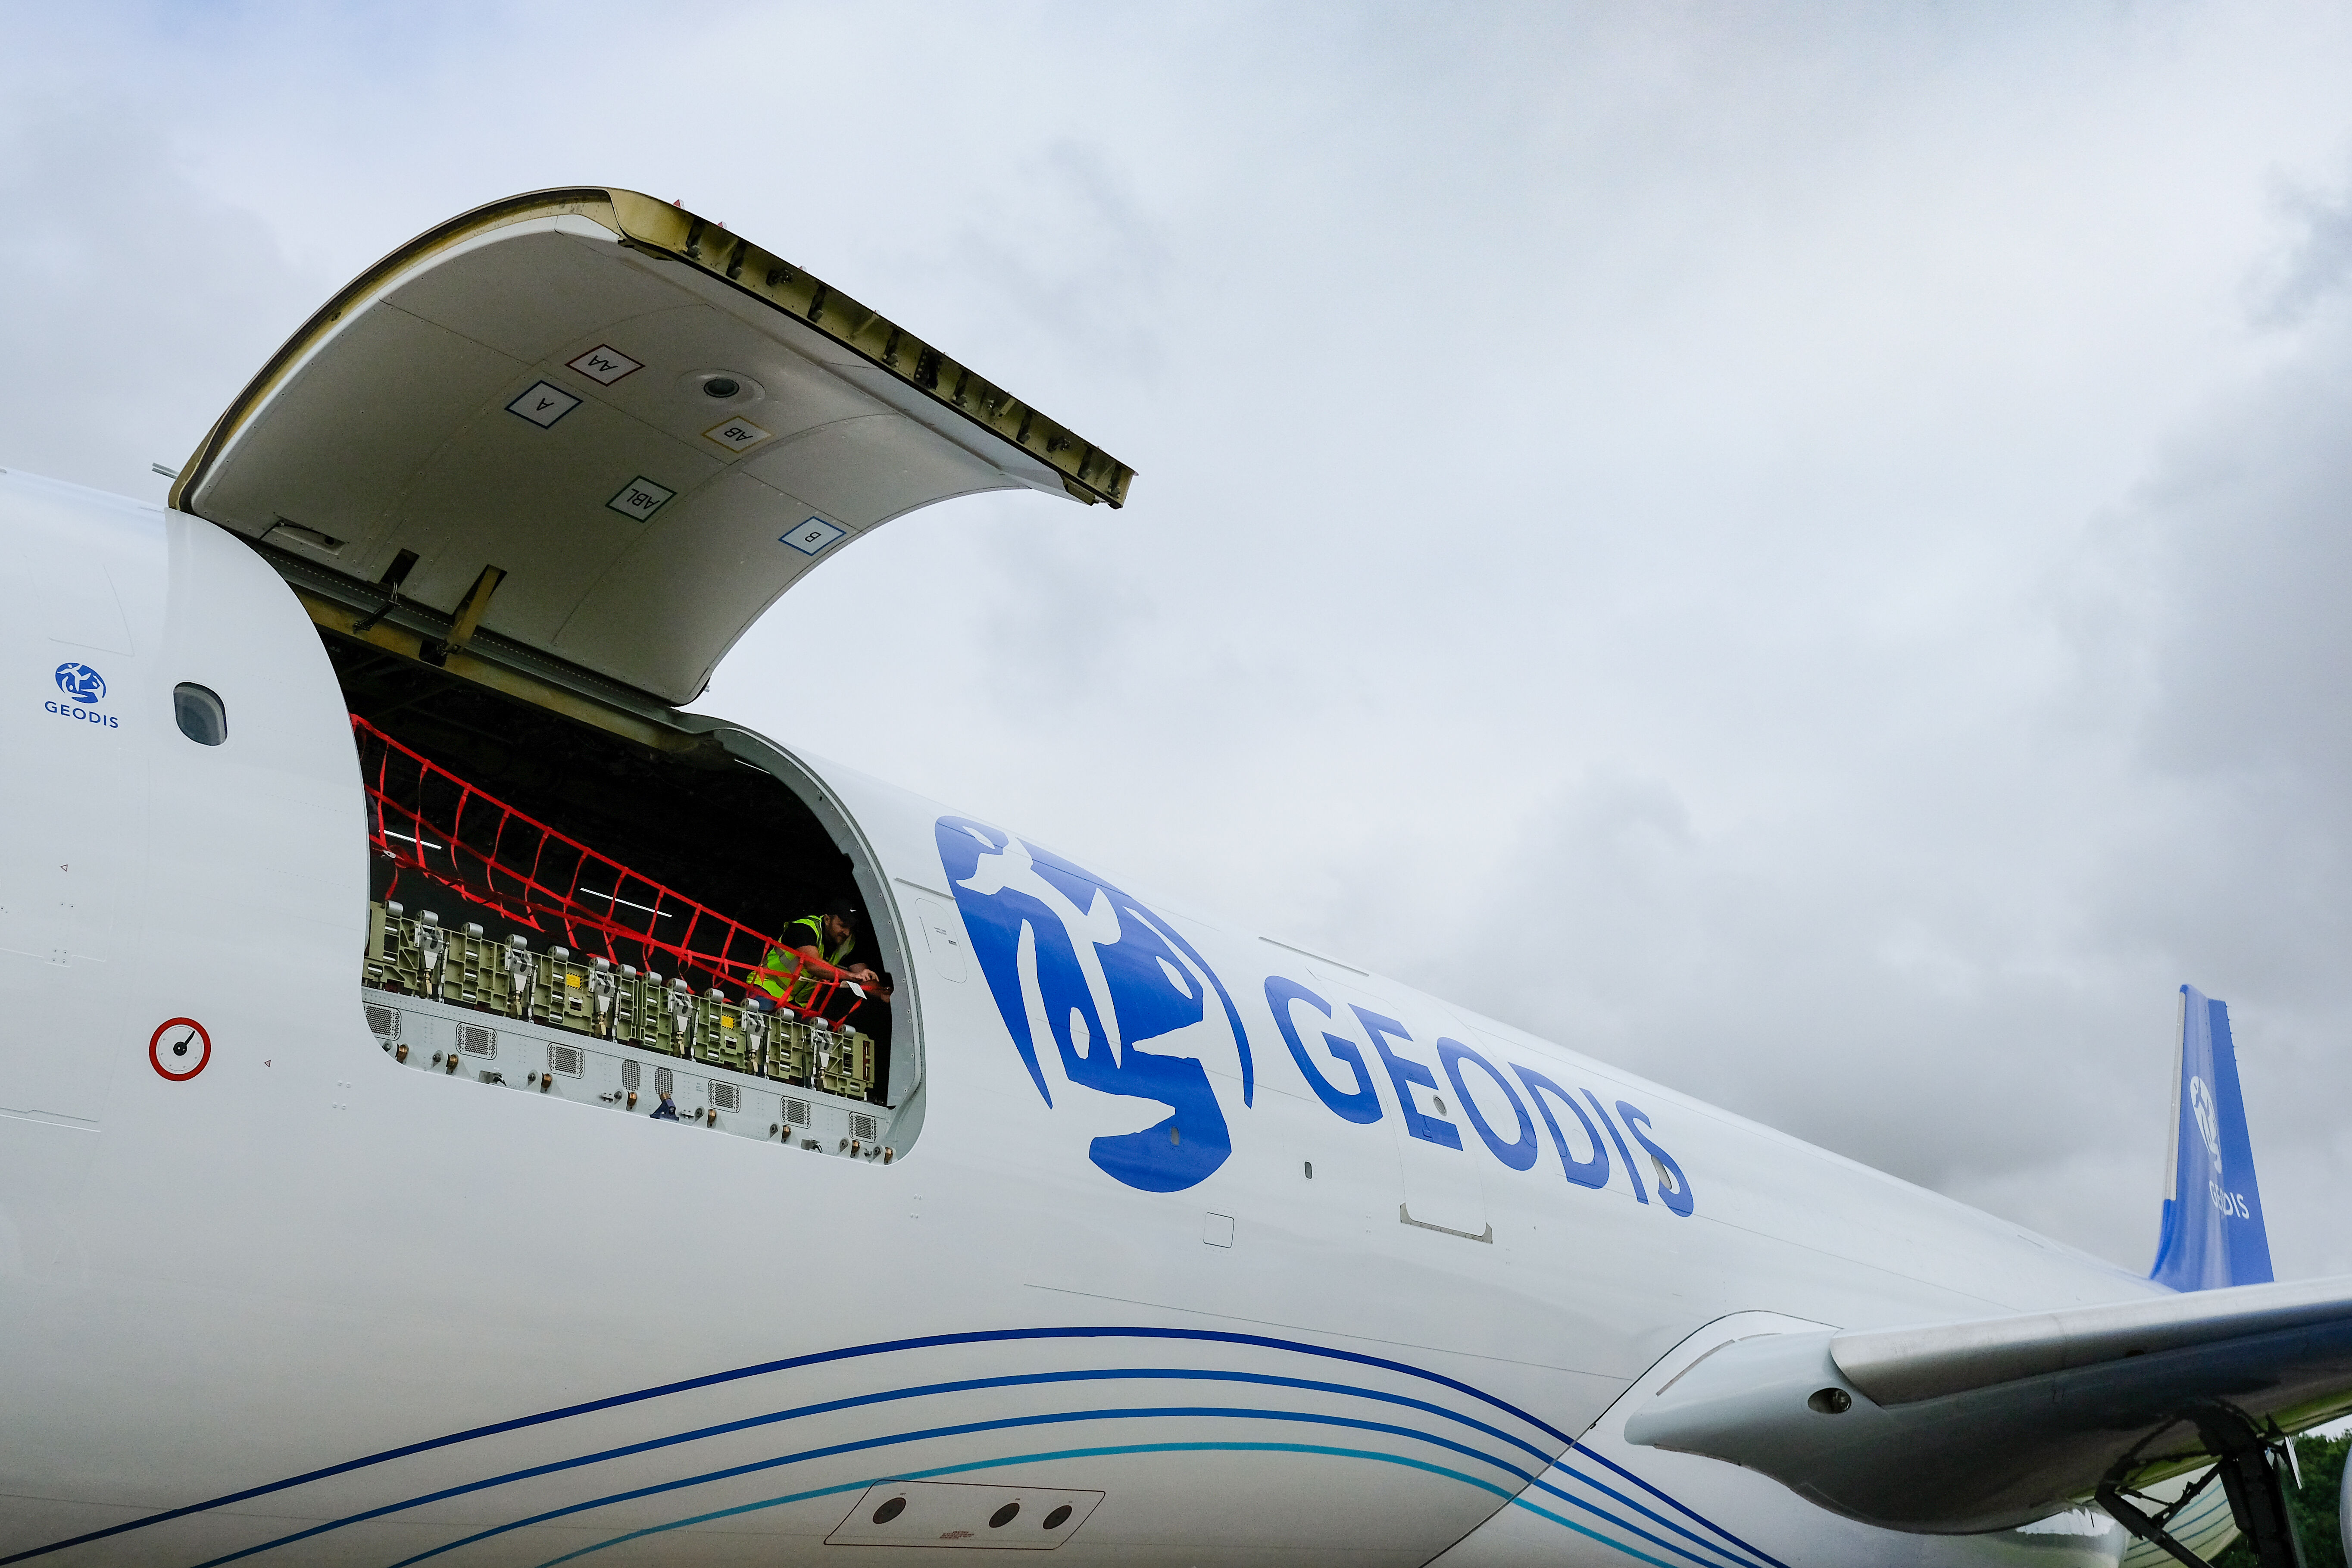 GEODIS expands AirDirect service between Europe and Asia with new route